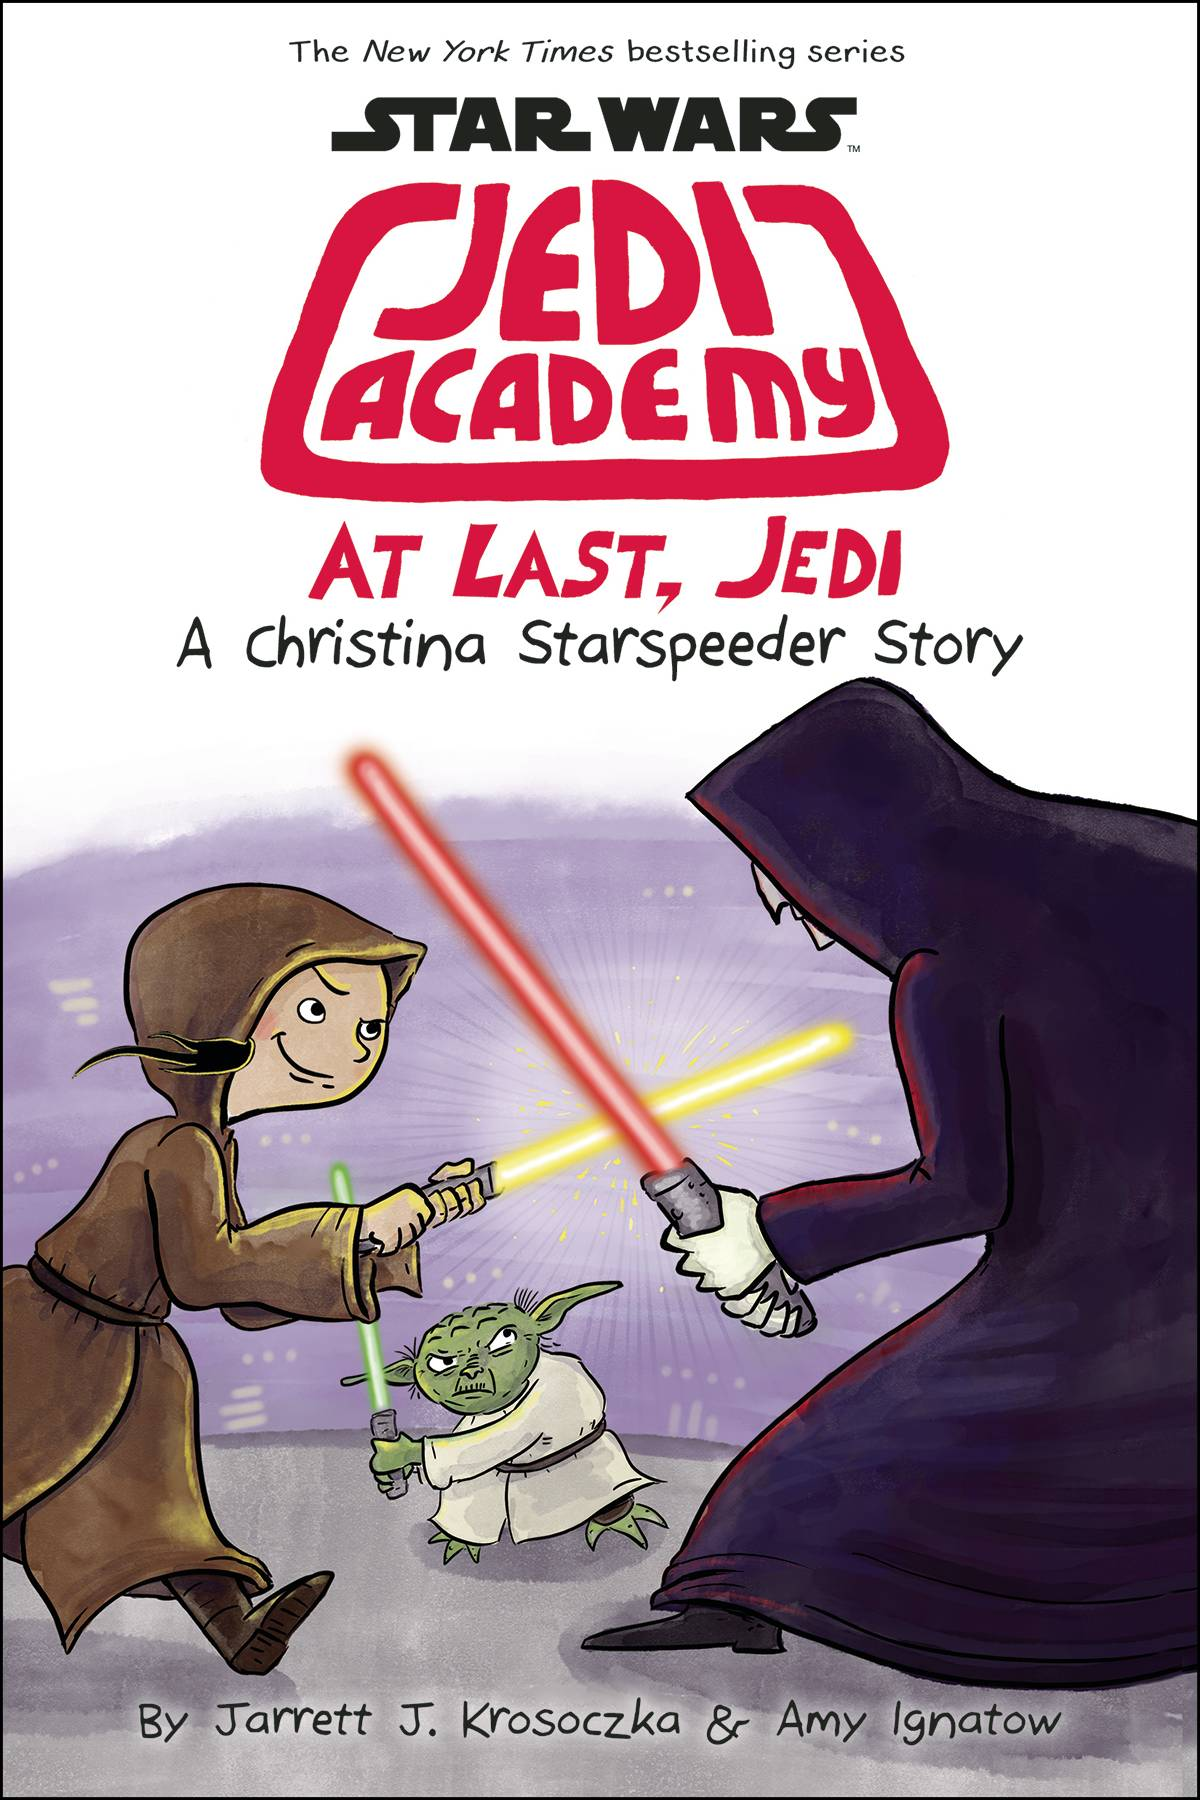 STAR WARS JEDI ACADEMY YR HC 09 AT LAST JEDI